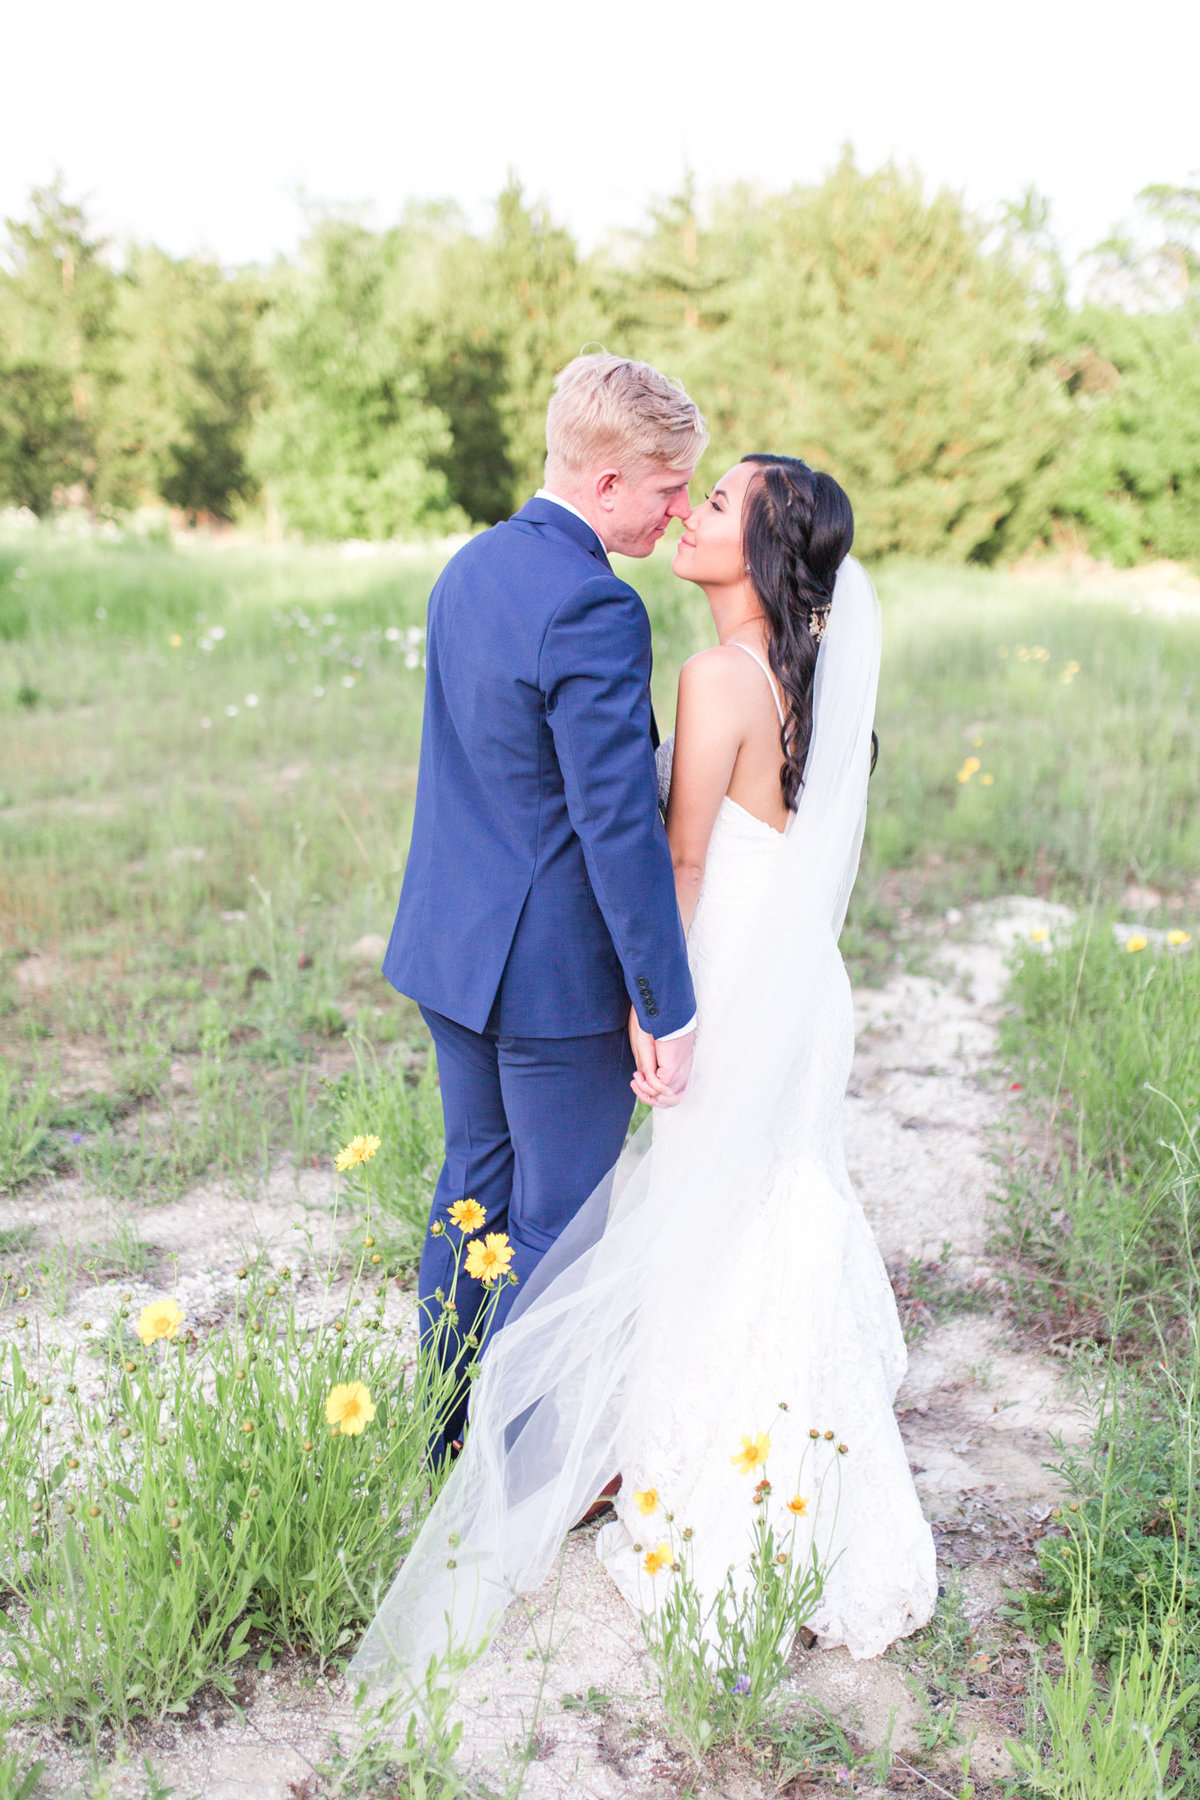 Dallas Wedding Photographers | Sami Kathryn Photography | Portfolio: Doug + Dyann at Stone Crest Venue